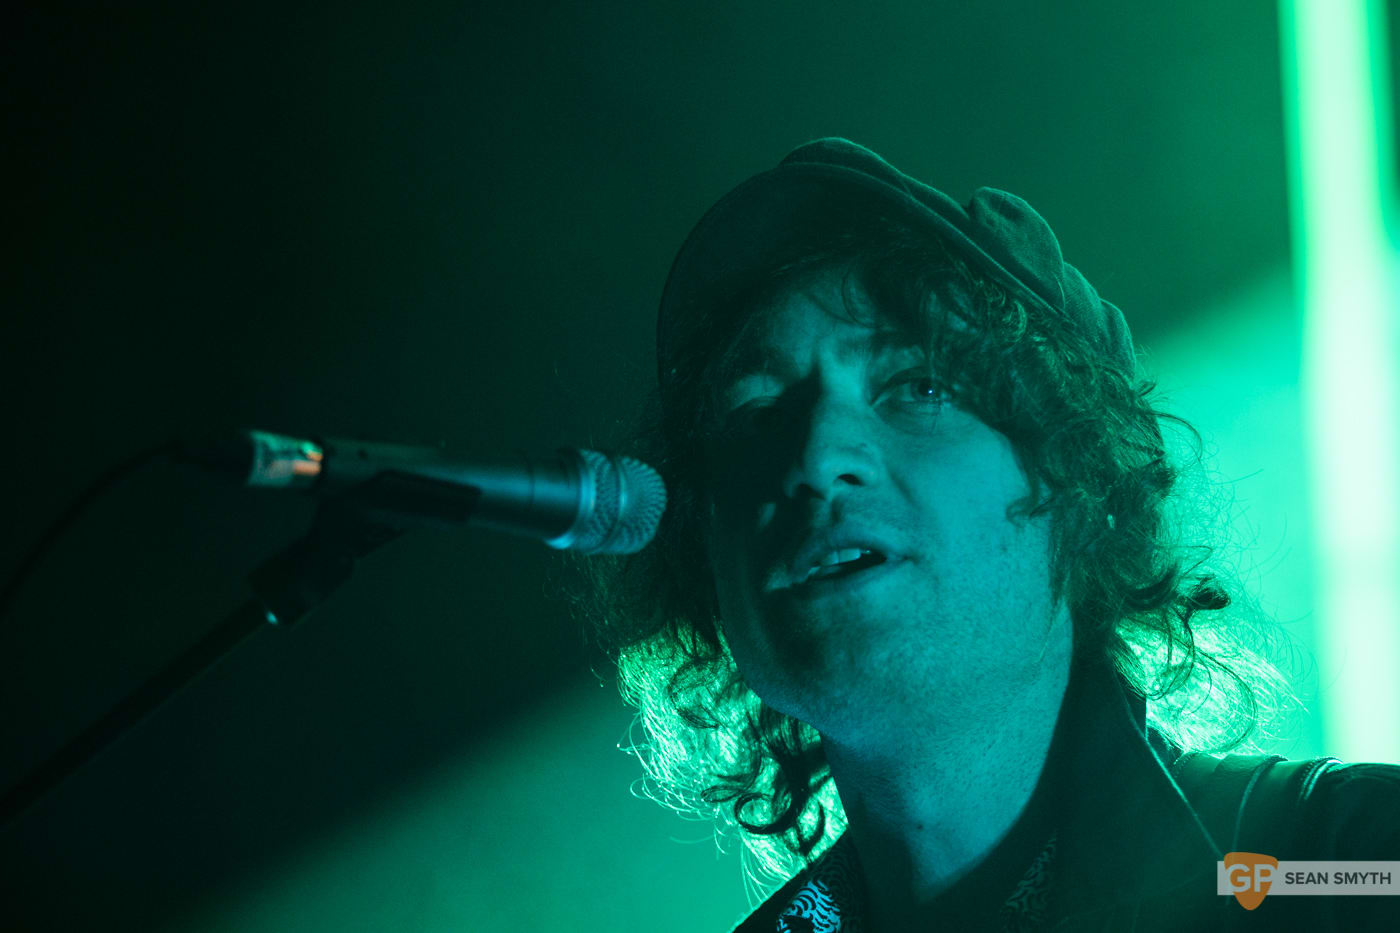 catfish-and-the-bottlemen-at-the-olympia-theatre-by-sean-smyth-20-11-16-21-of-27